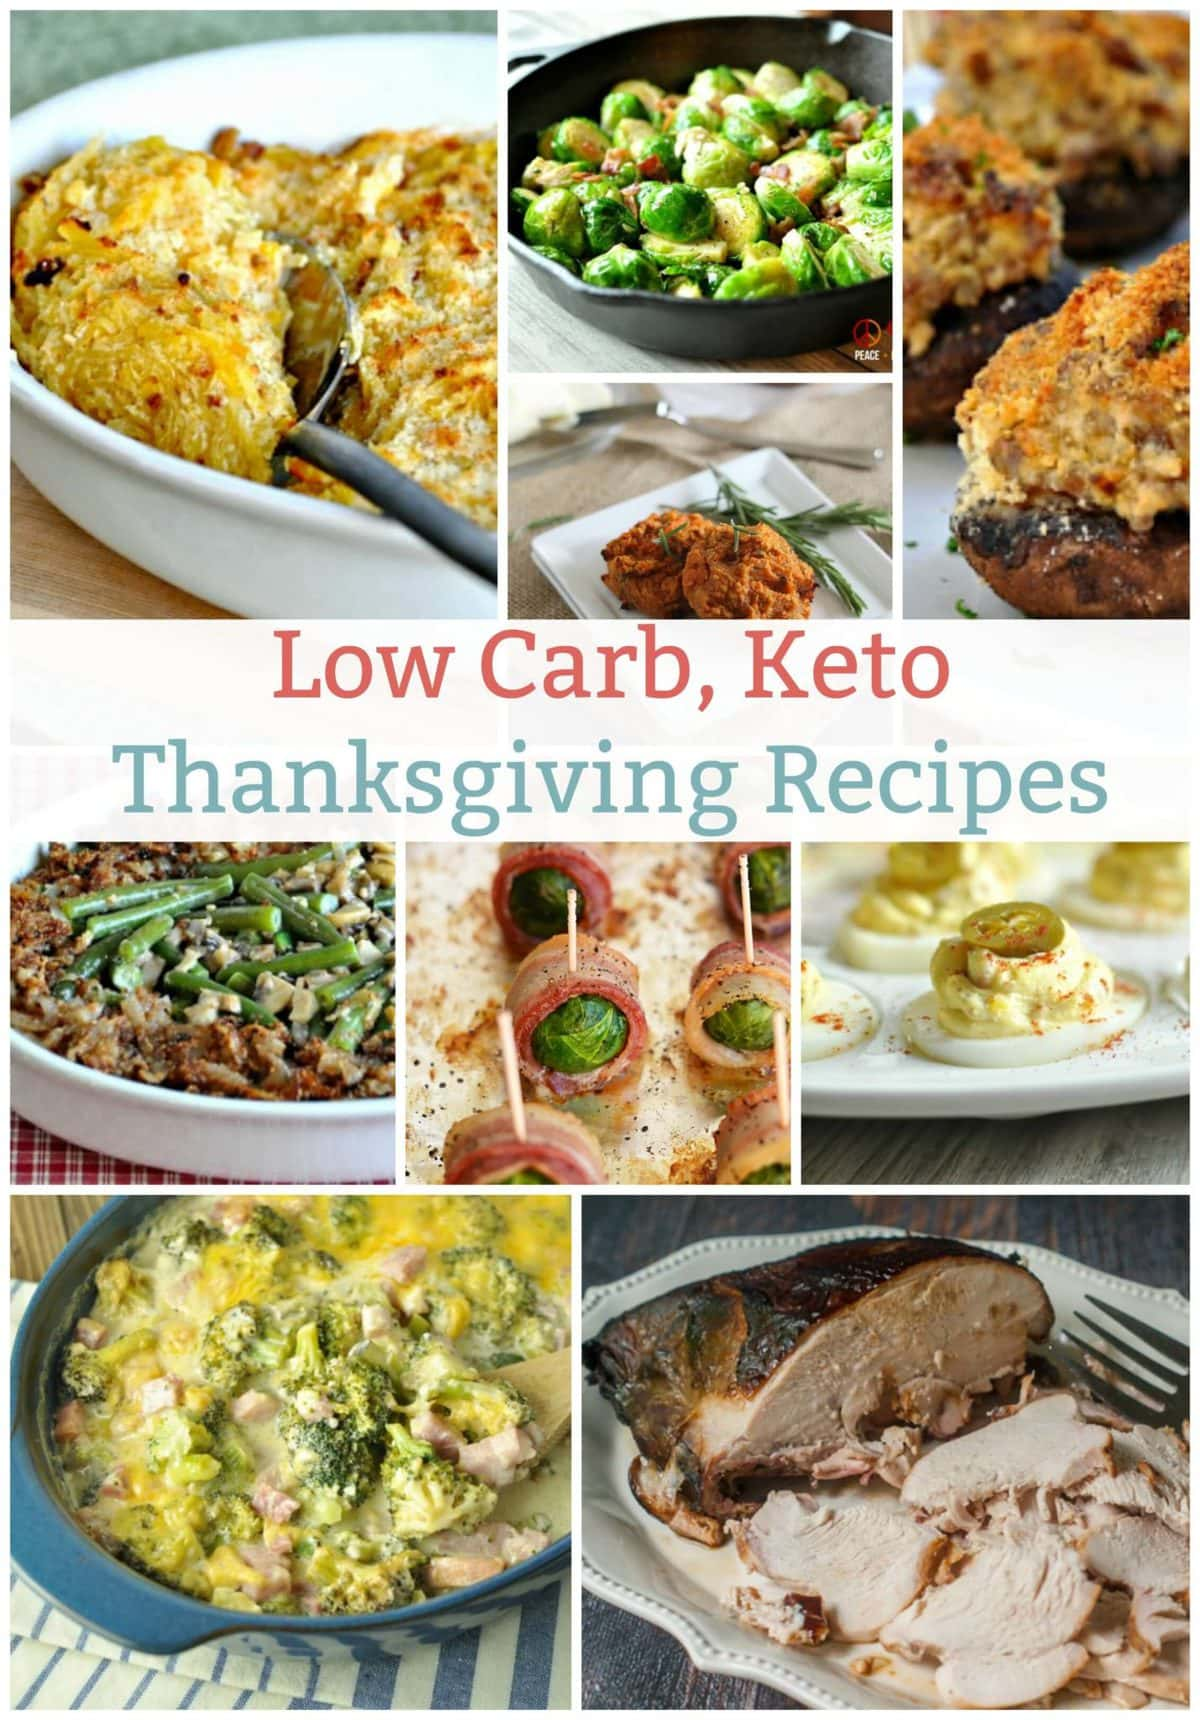 Low Carb Keto Thanksgiving Recipes | Peace Love and Low Carb